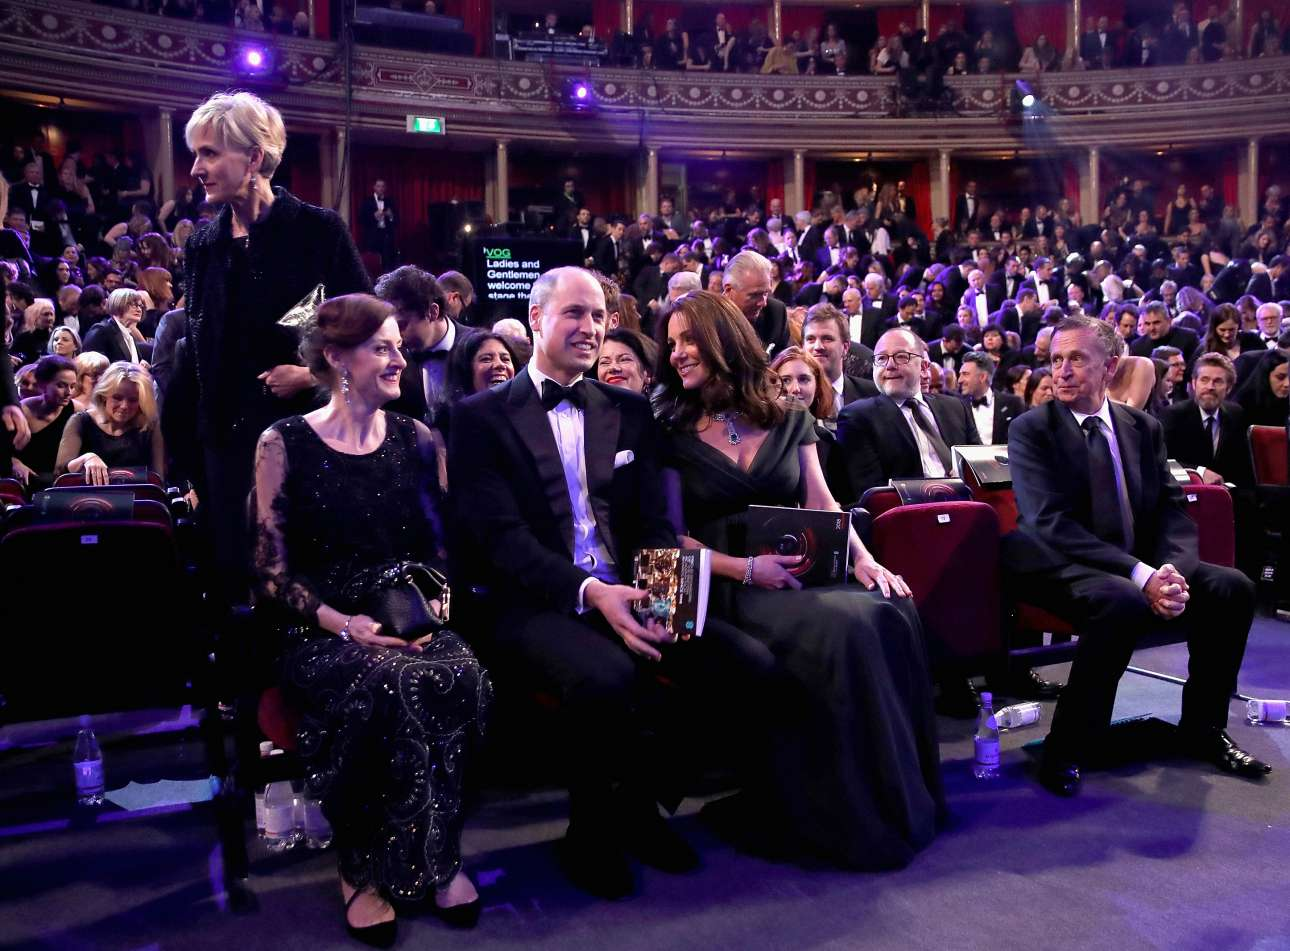 2018-02-19T021413Z_1061598959_RC1DF49E72C0_RTRMADP_3_AWARDS-BAFTA